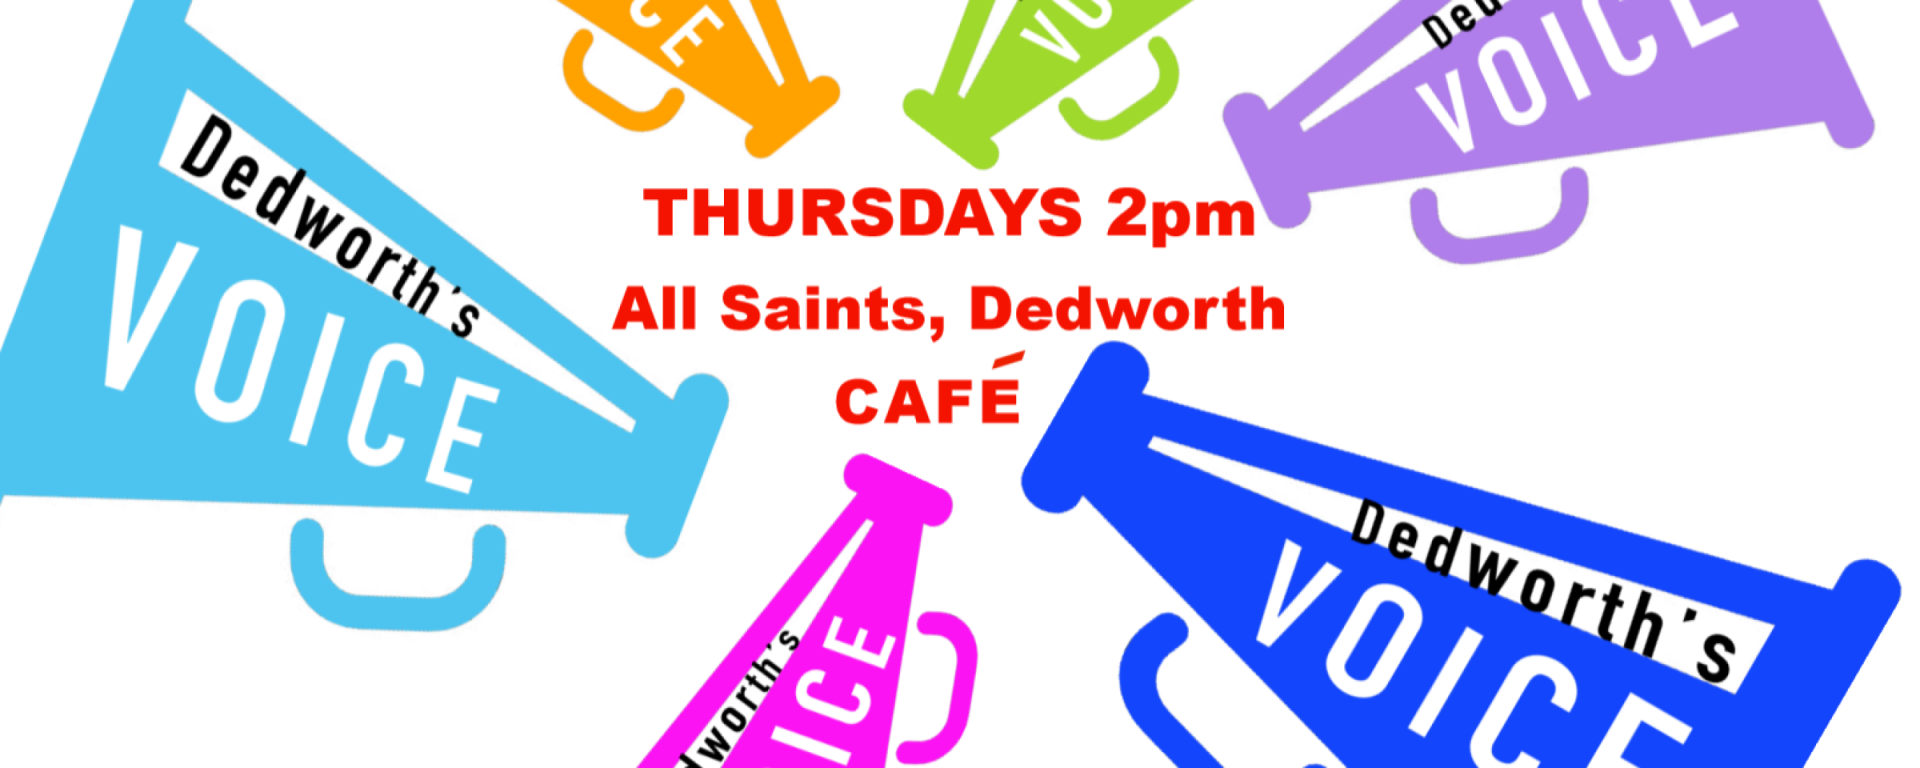 voice dedworth cafe 2pm all saints